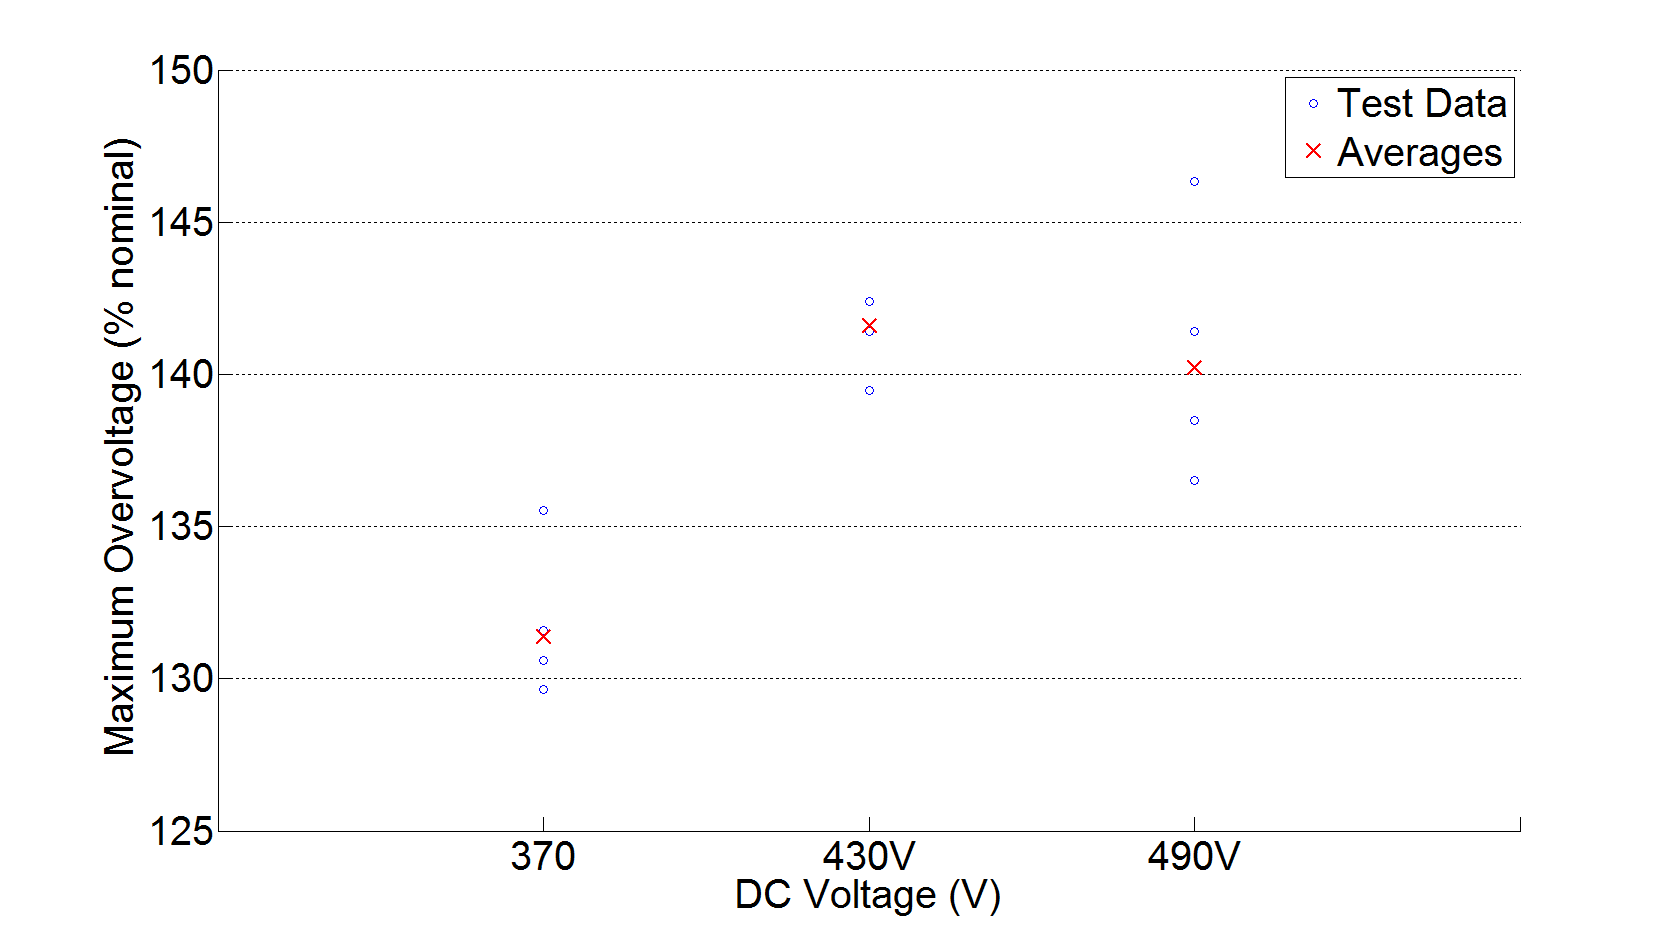 3.6 Effect of DC Input Voltage on AC Over-voltage For single-stage inverters, some of the output responses observed in the previous section indicated that the test inverter could meet or exceed the